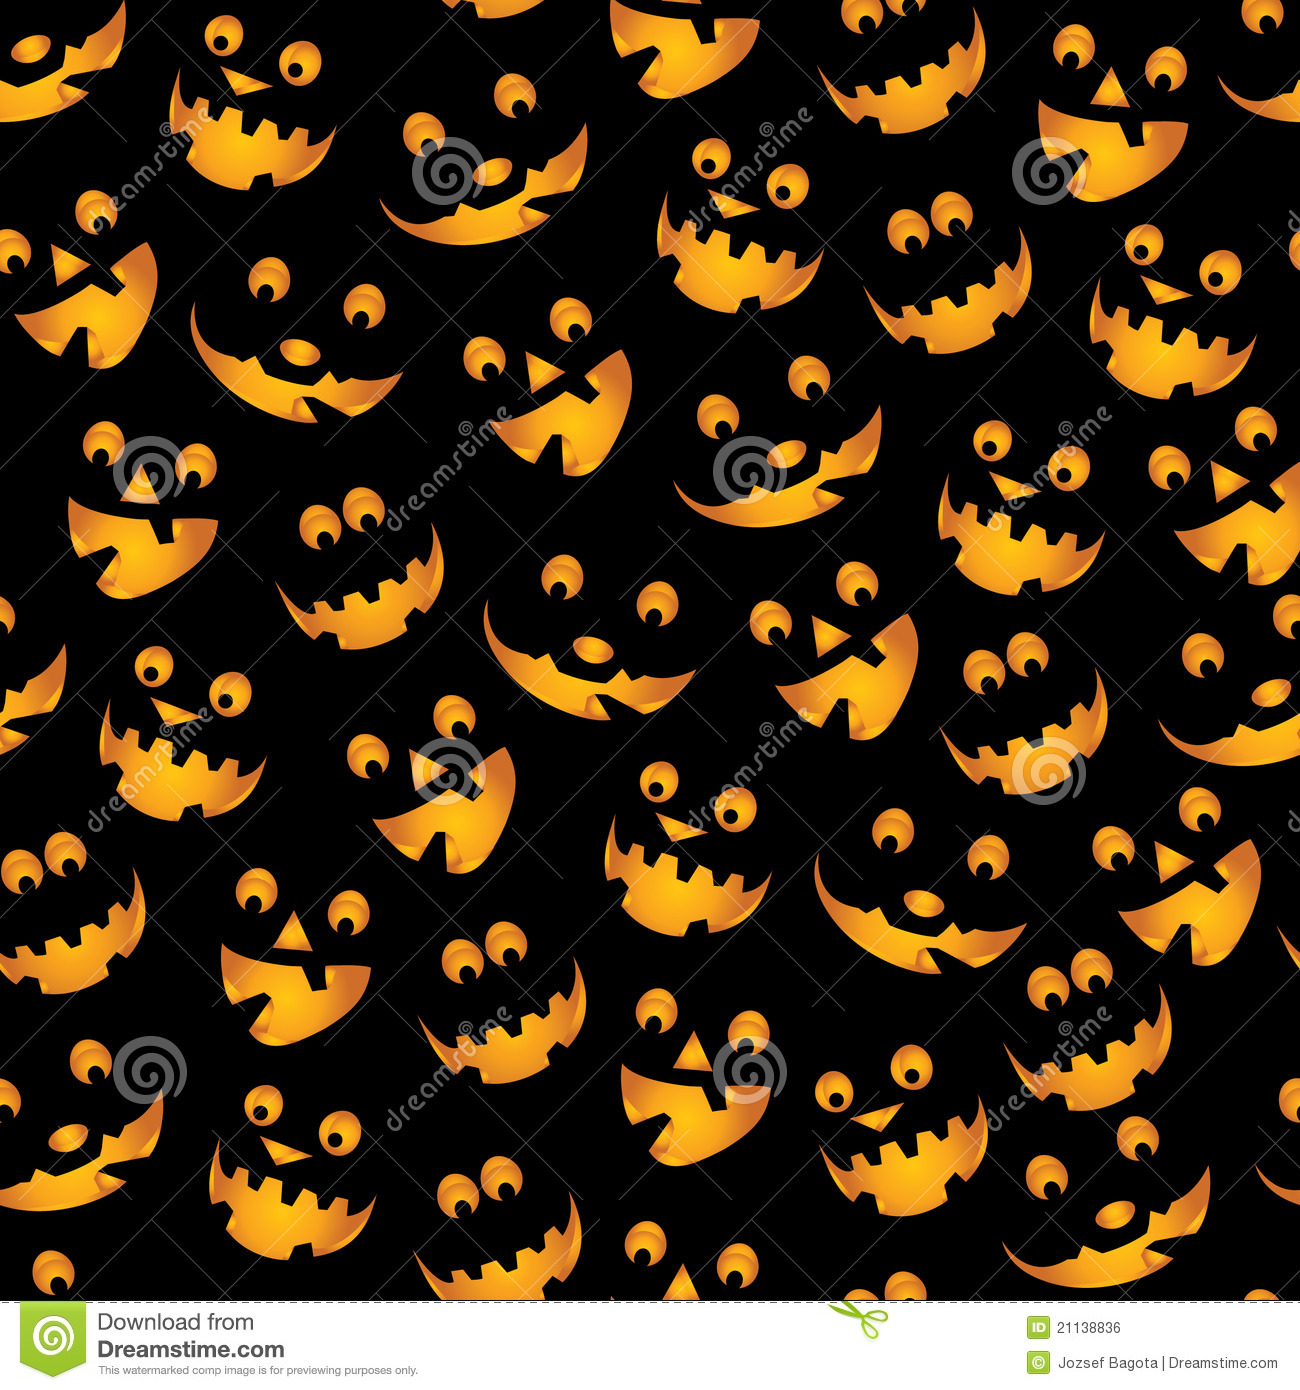 Free Cute Fall Wallpapers Halloween Pumpkins Background Stock Vector Image 21138836